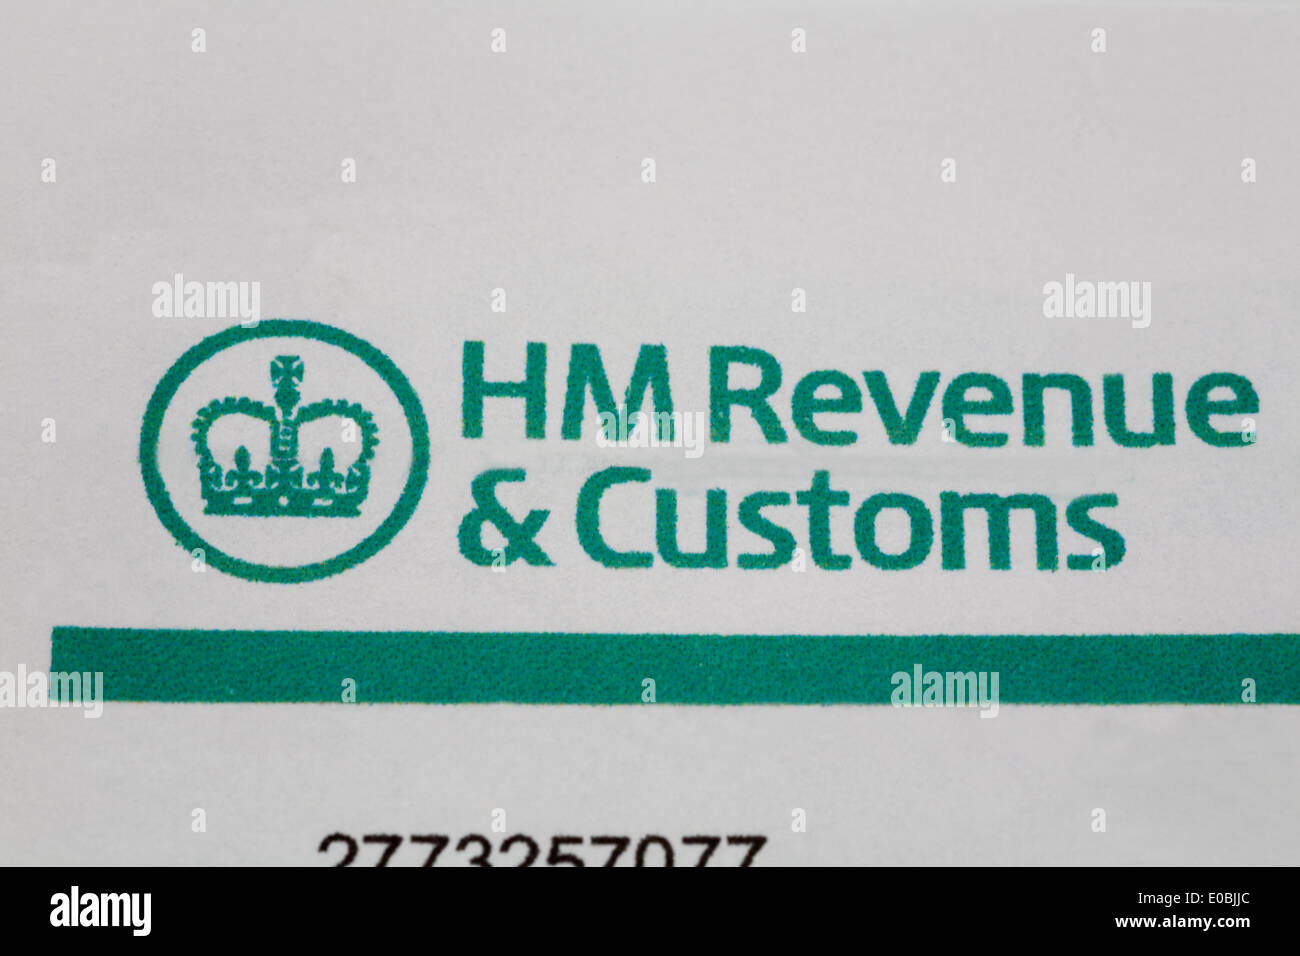 Correspondence headed paper from HM Revenue & Customs - Stock Image